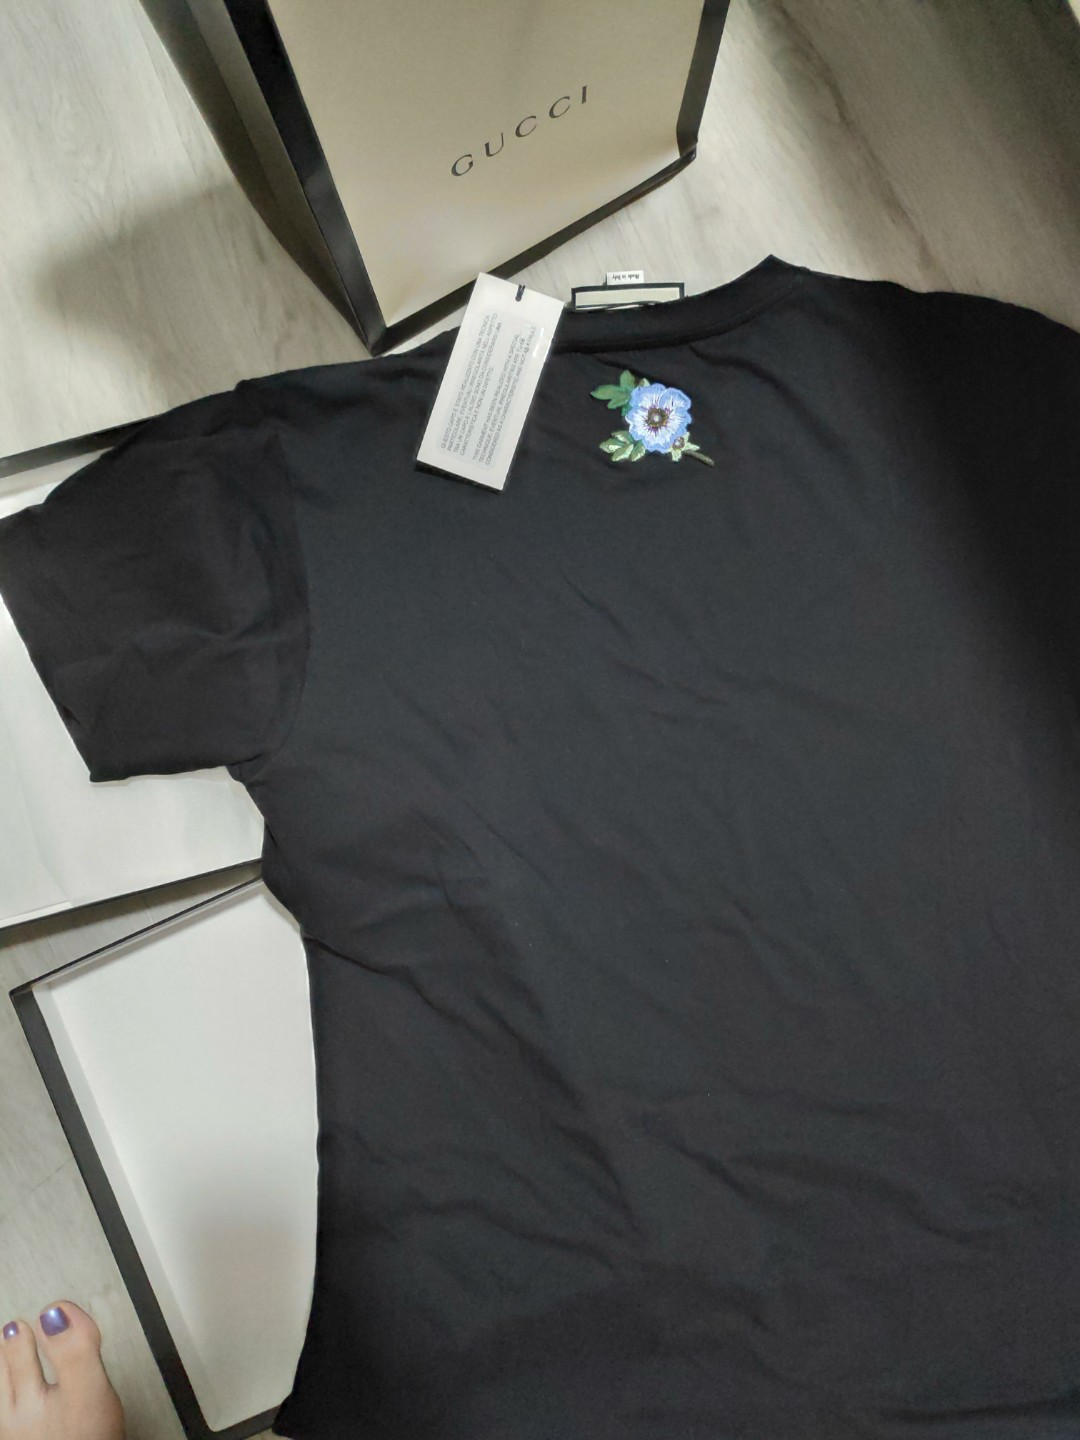 8728ac040e9 Brand new GUCCI ladies Oversize tshirt with Gucci logo black (XS size)